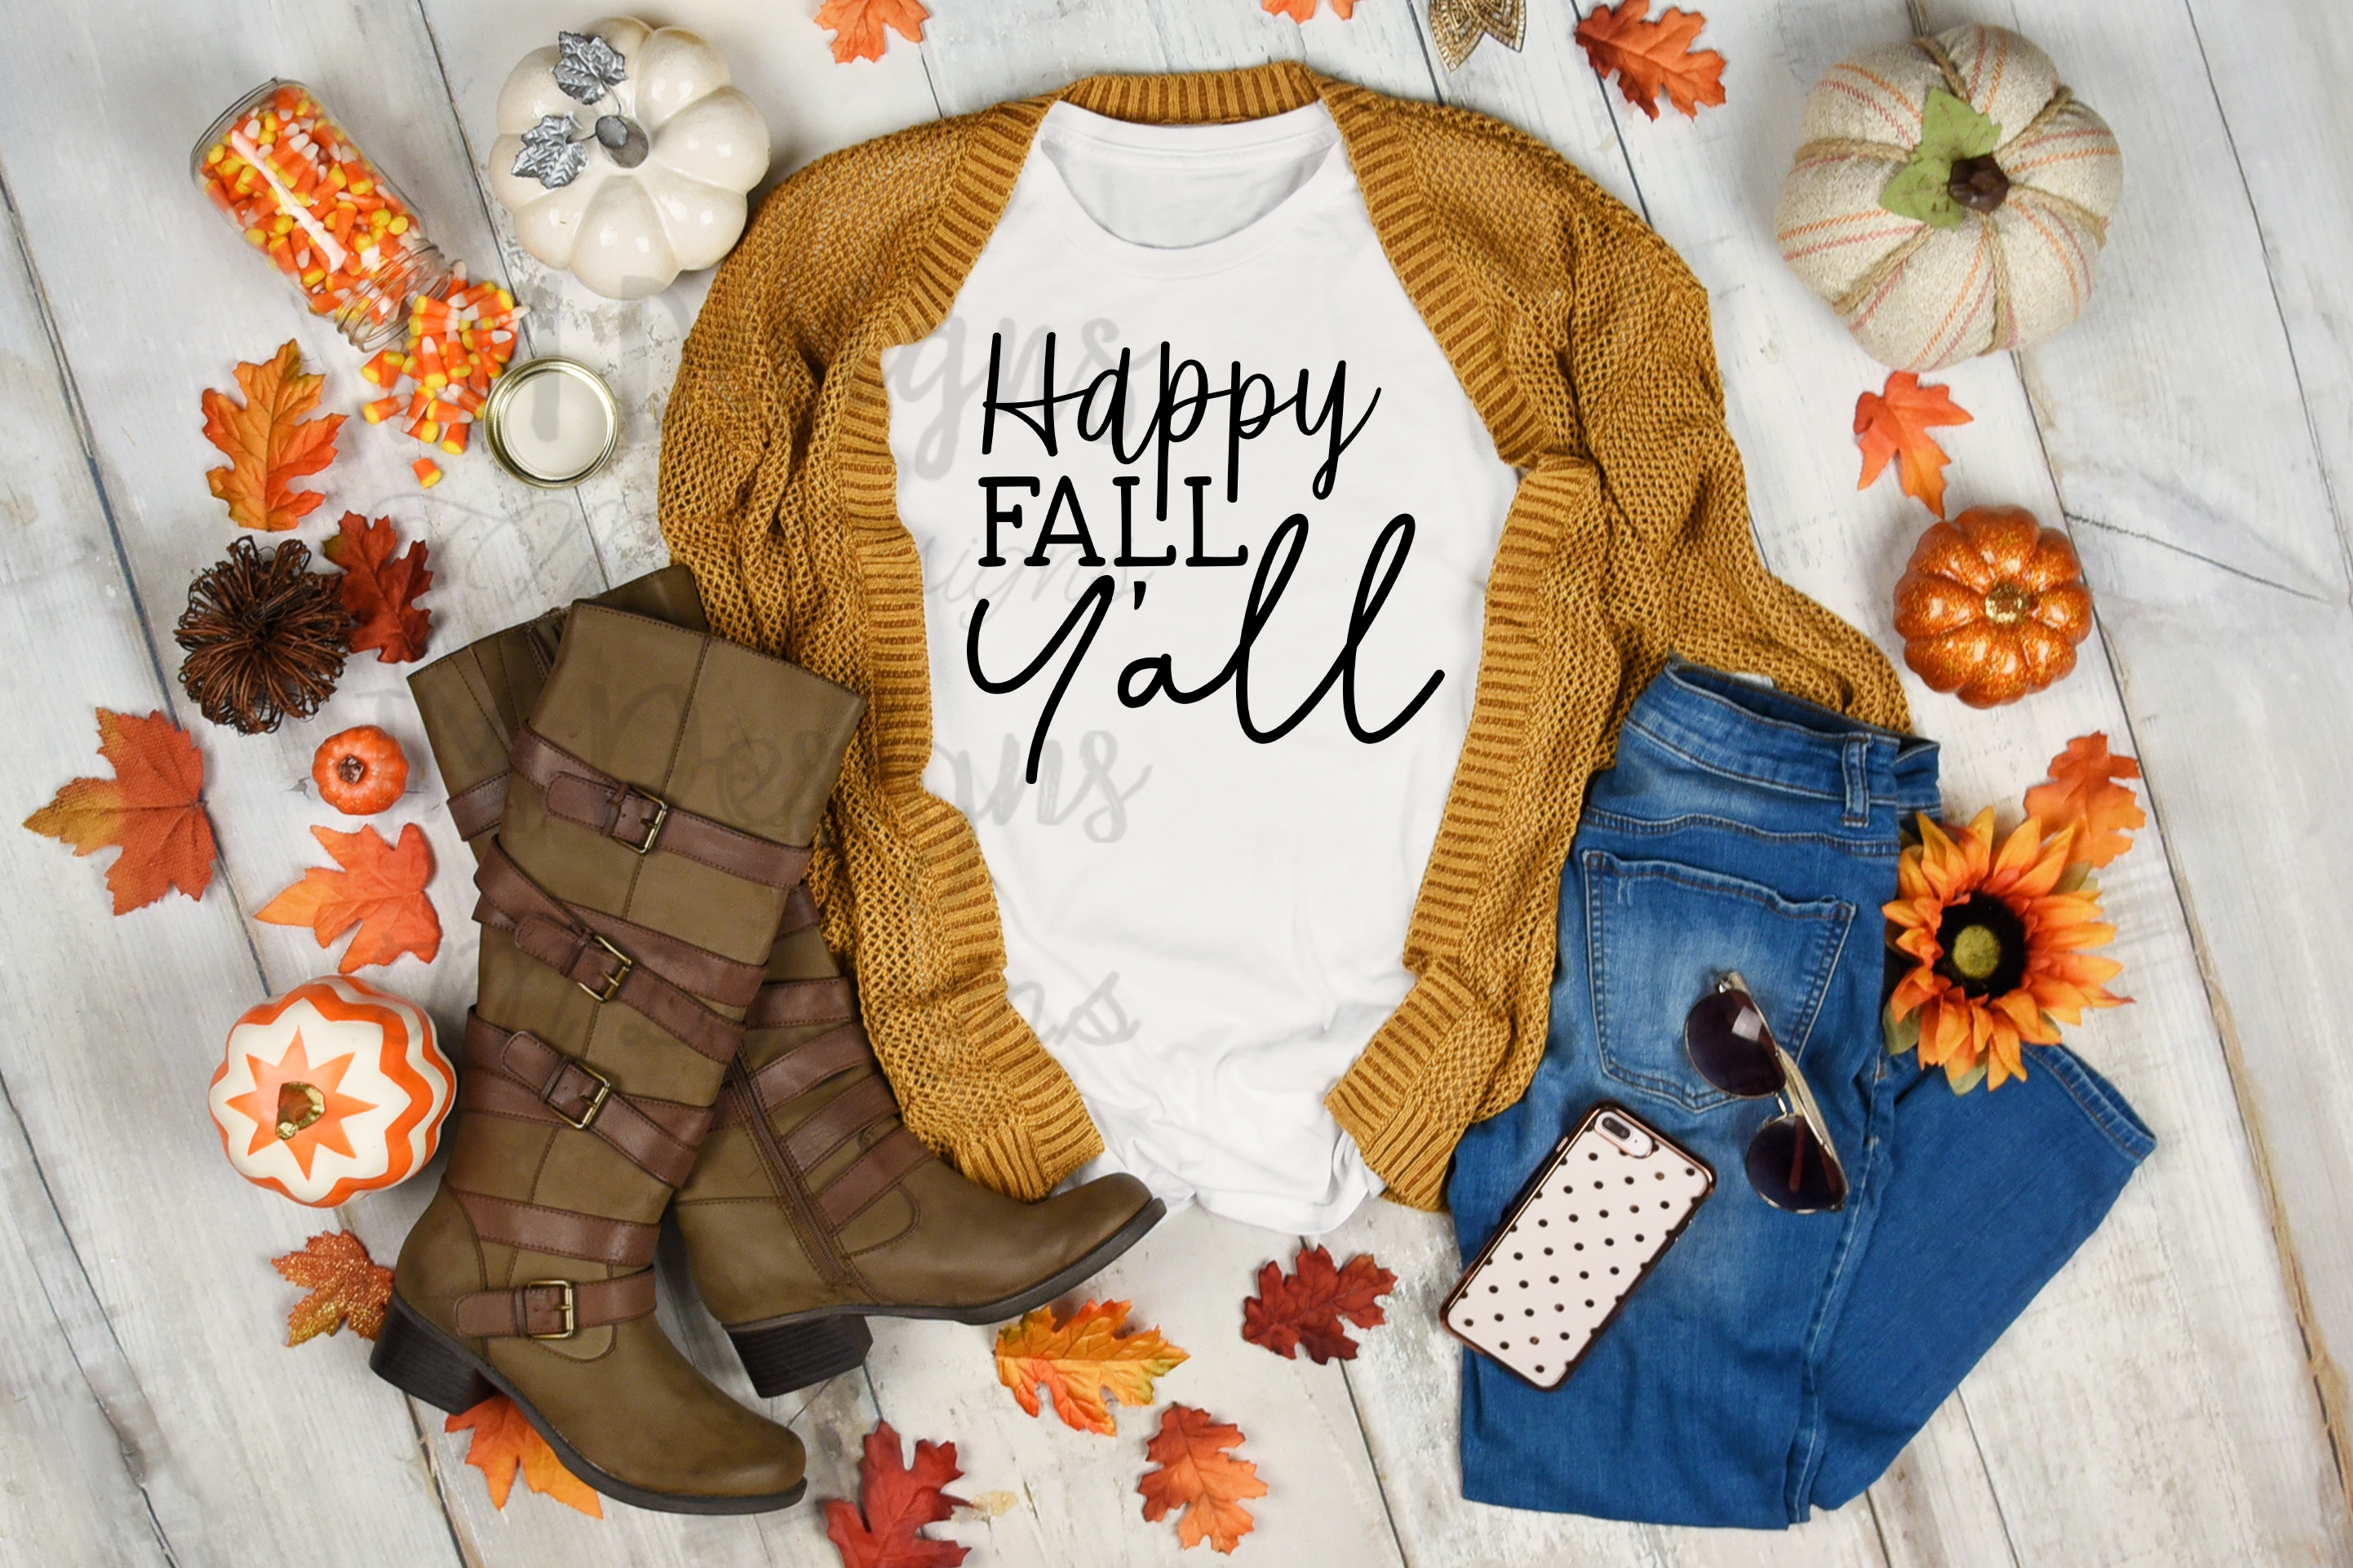 Download Free Happy Fall Y All Graphic By Tabitha Beam Creative Fabrica for Cricut Explore, Silhouette and other cutting machines.